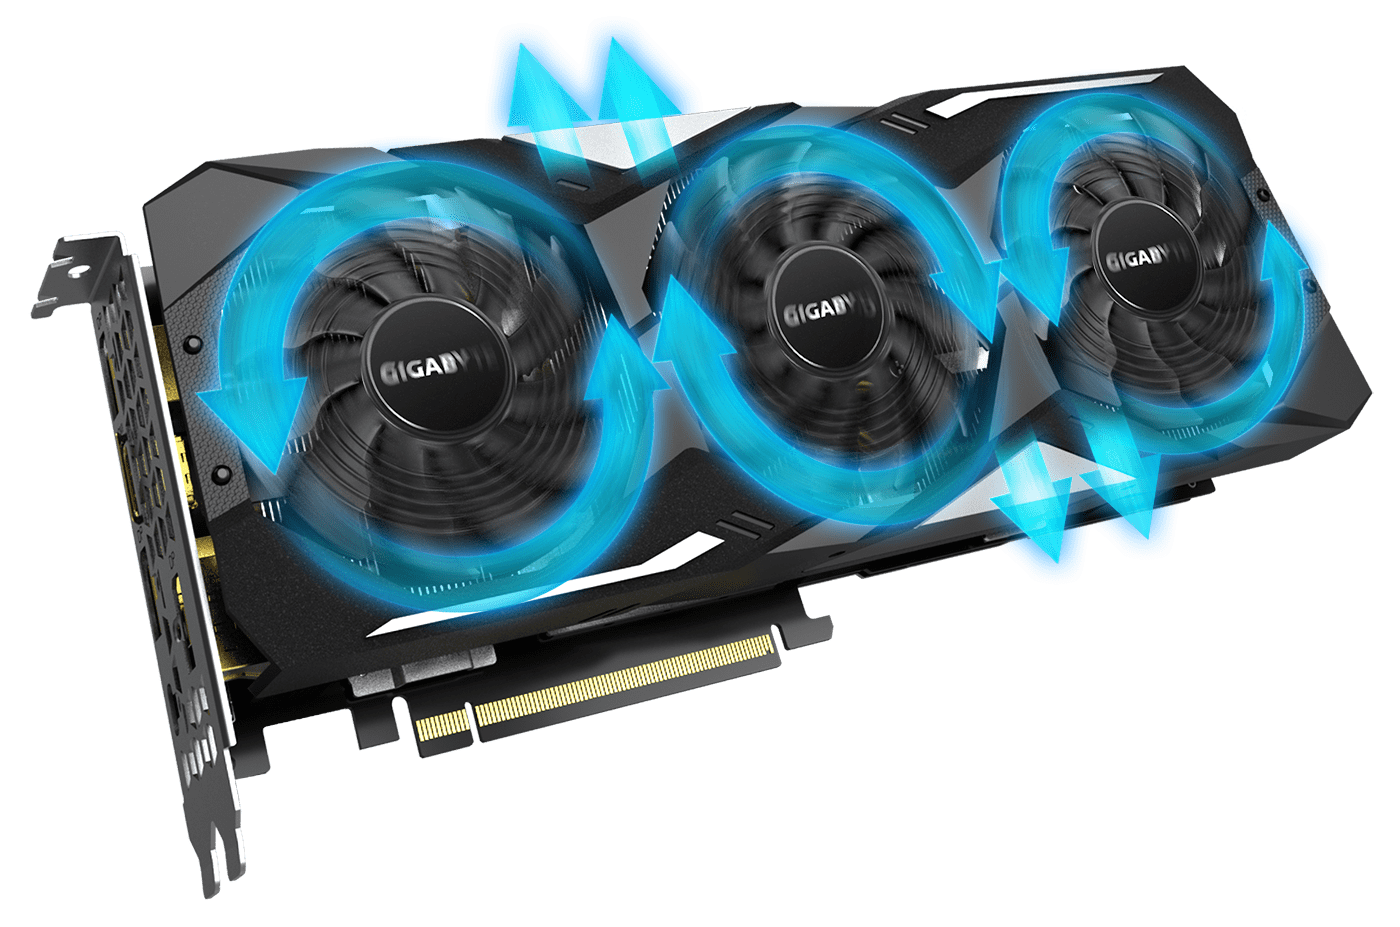 Gigabyte Geforce Rtx 2080 Gaming Oc 8g Video Card Gv N2080gaming 70 Watt Mosfet Audio Amplifier Schematic Pictures To Pin On Pinterest Alternate Spinning